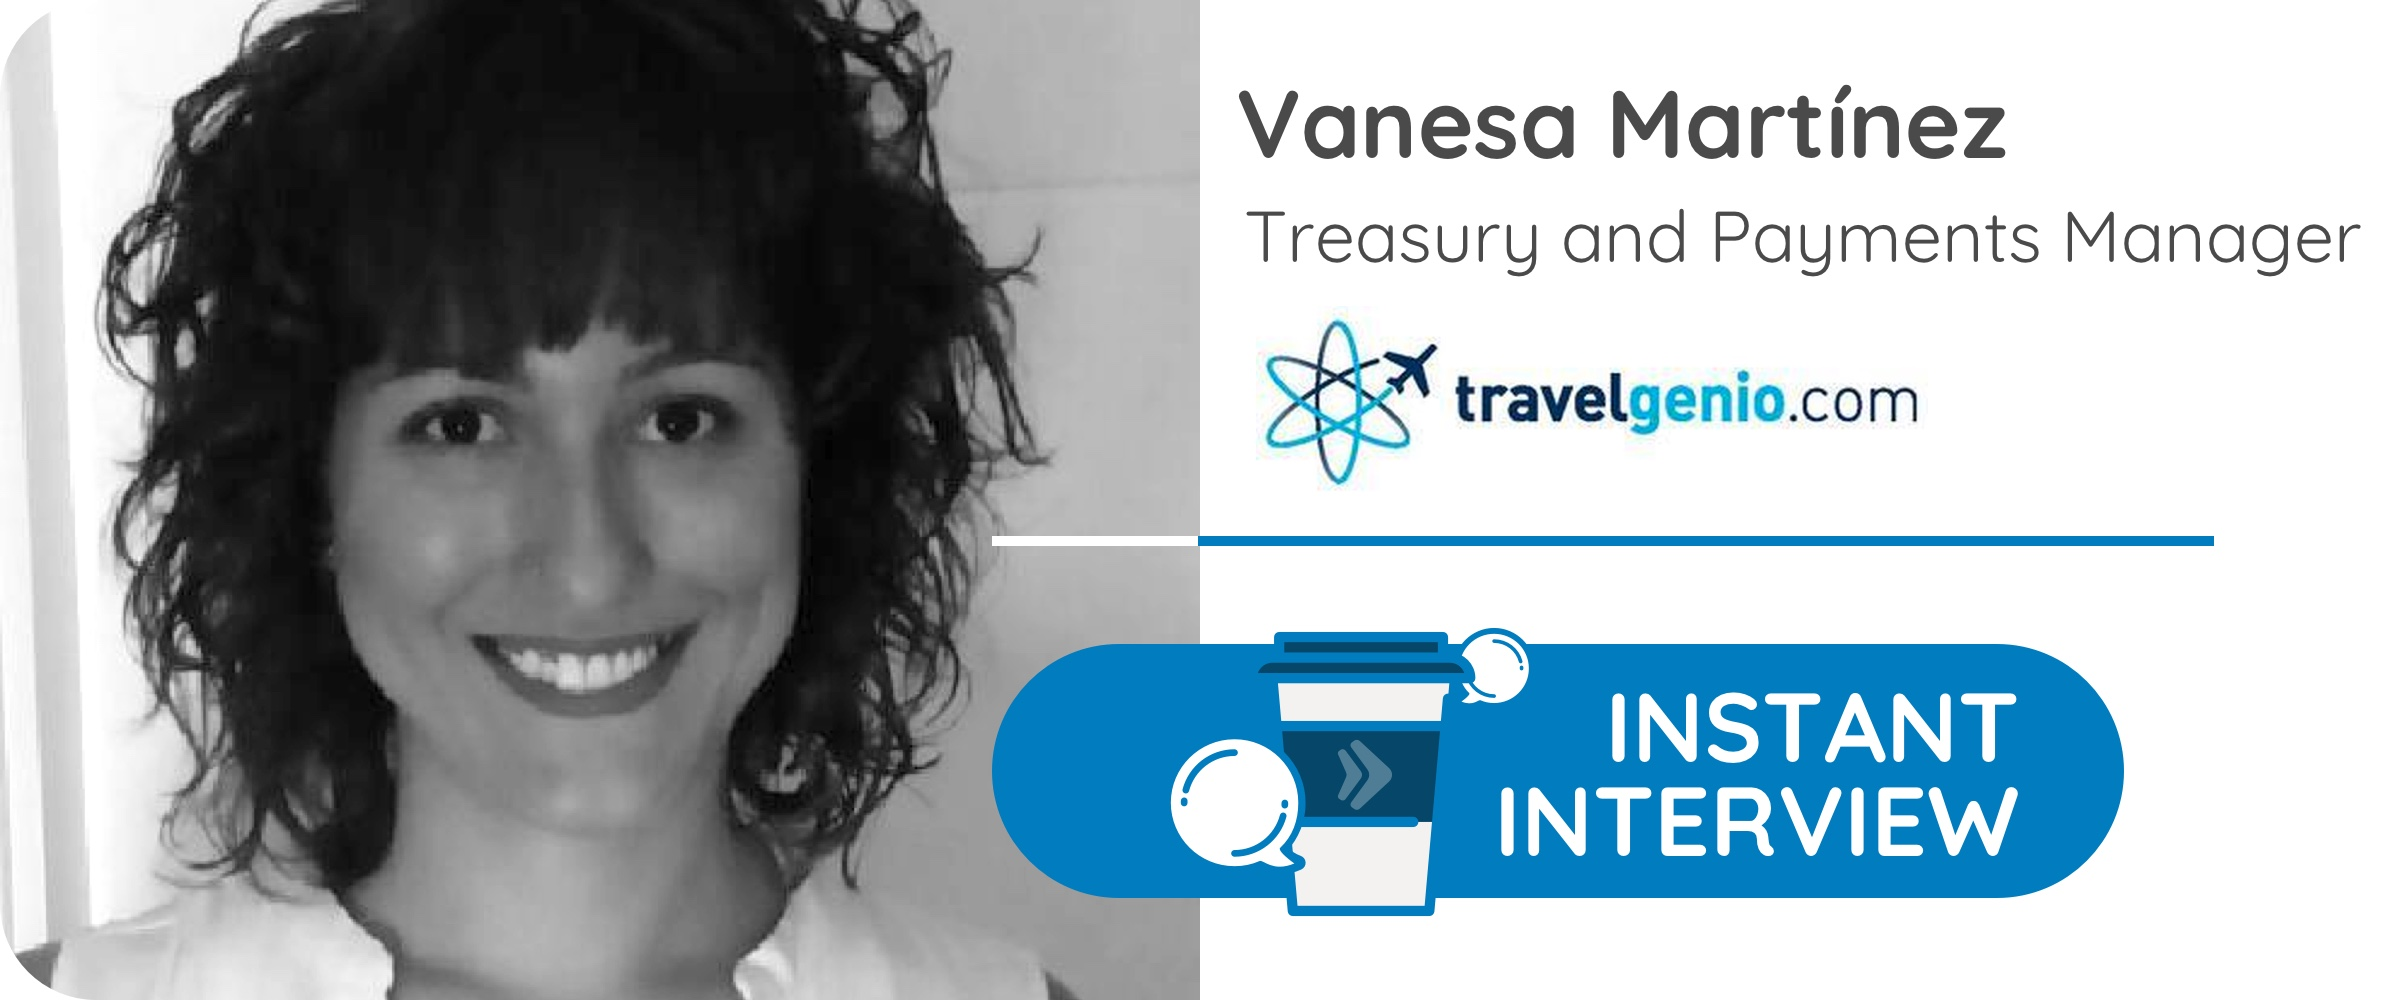 V.M, Treasury and Payments Manager de la agencia de viajes Travelgenio